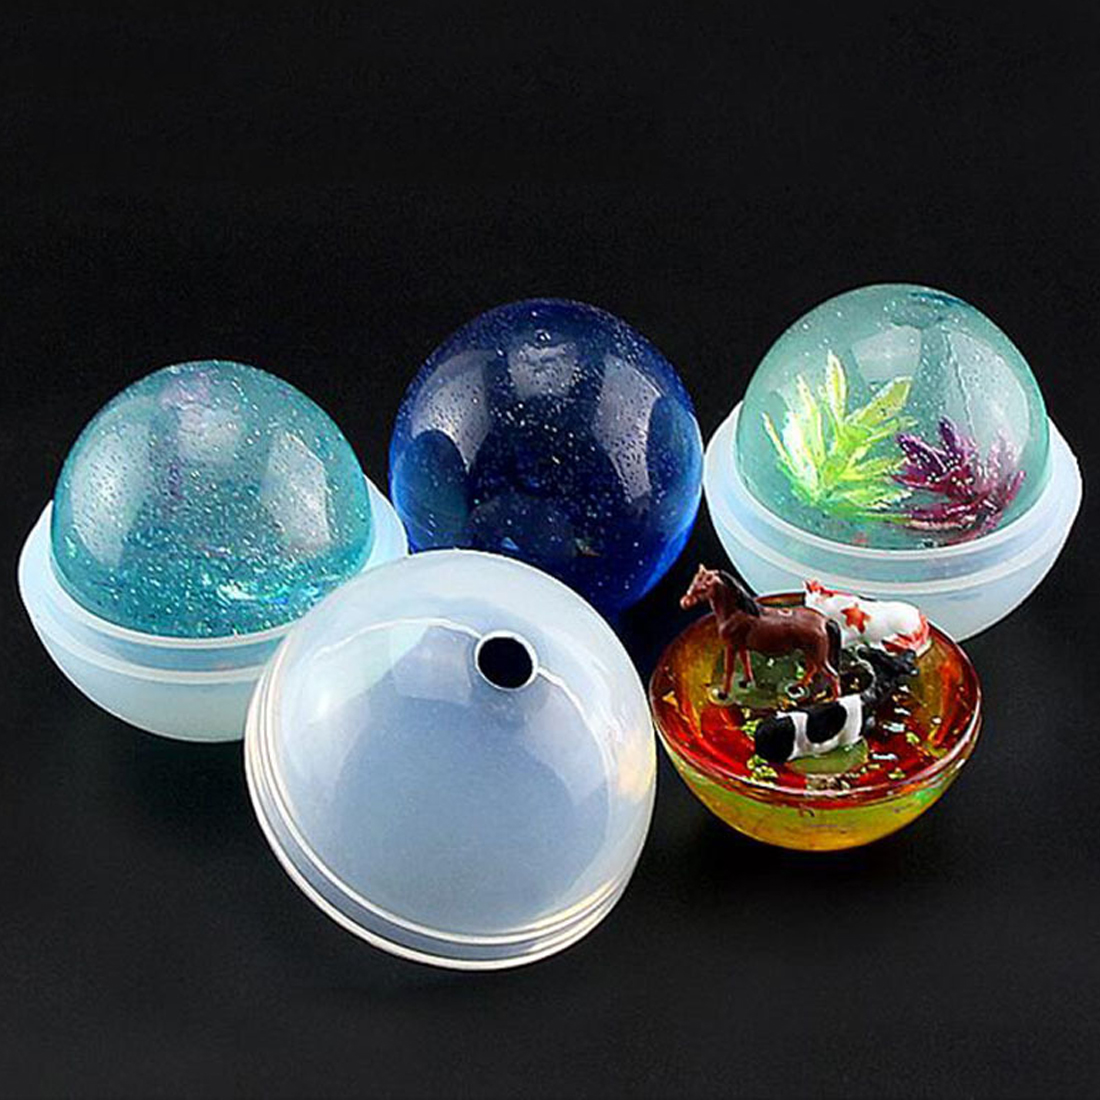 DIY Universe Ball Shpe Type Epoxy Resin Molds For Jewelry Transparent Silicone Mould Dried Flower Resin Decorative Craft